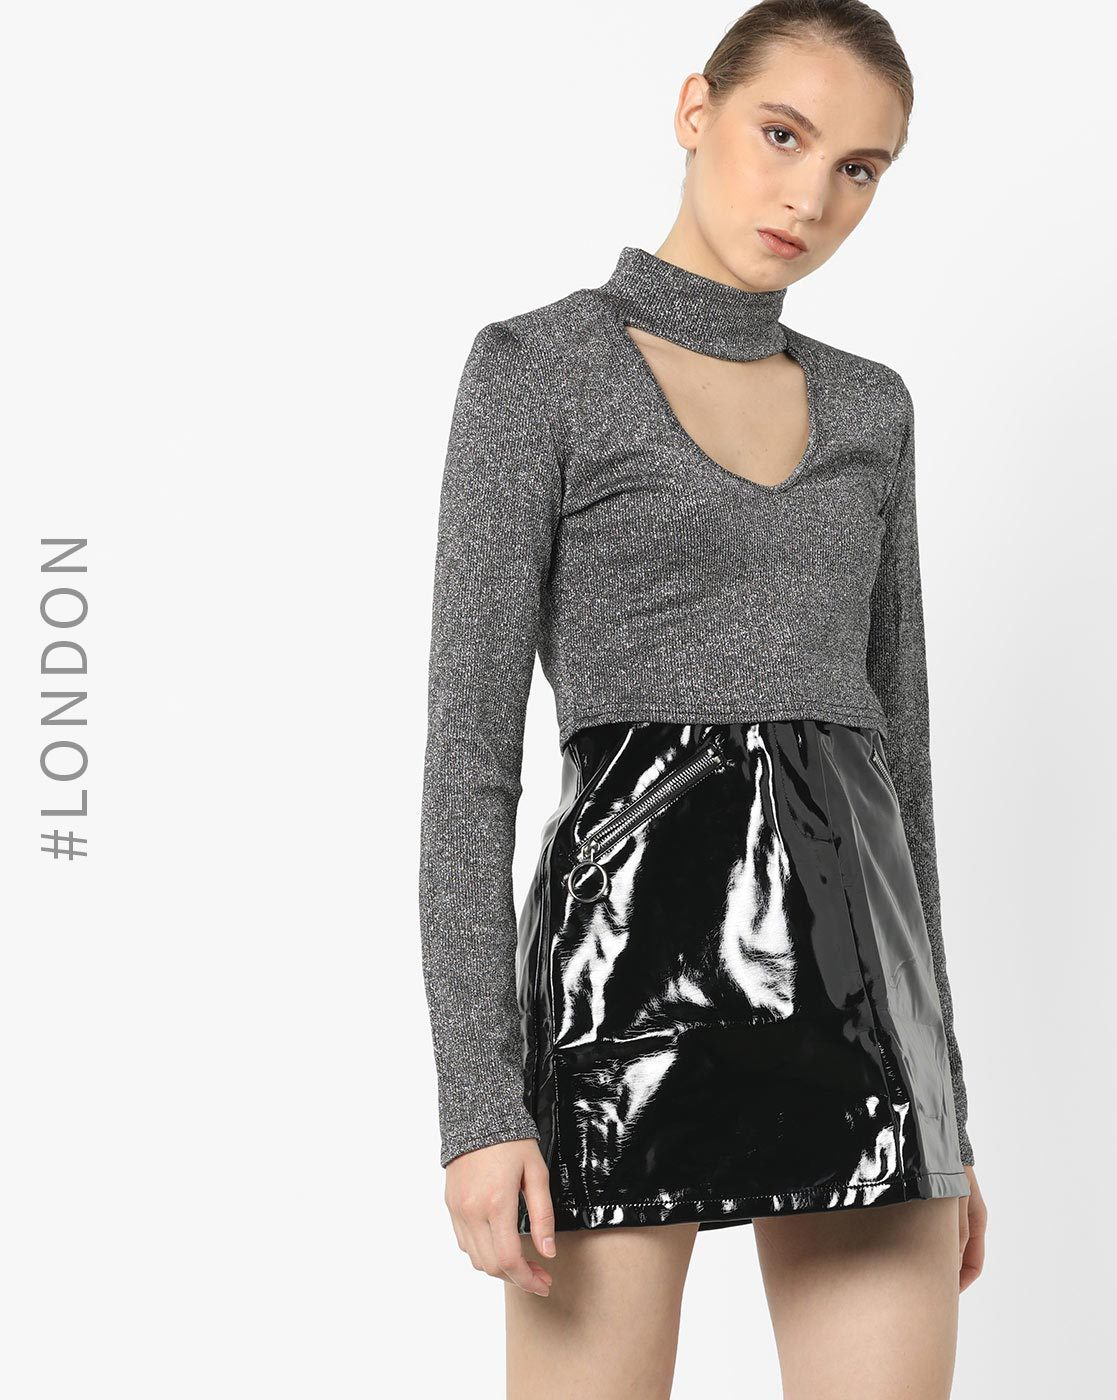 12-types-of-tops-Ribbed-Crop-Top-with-Choker-Neckline